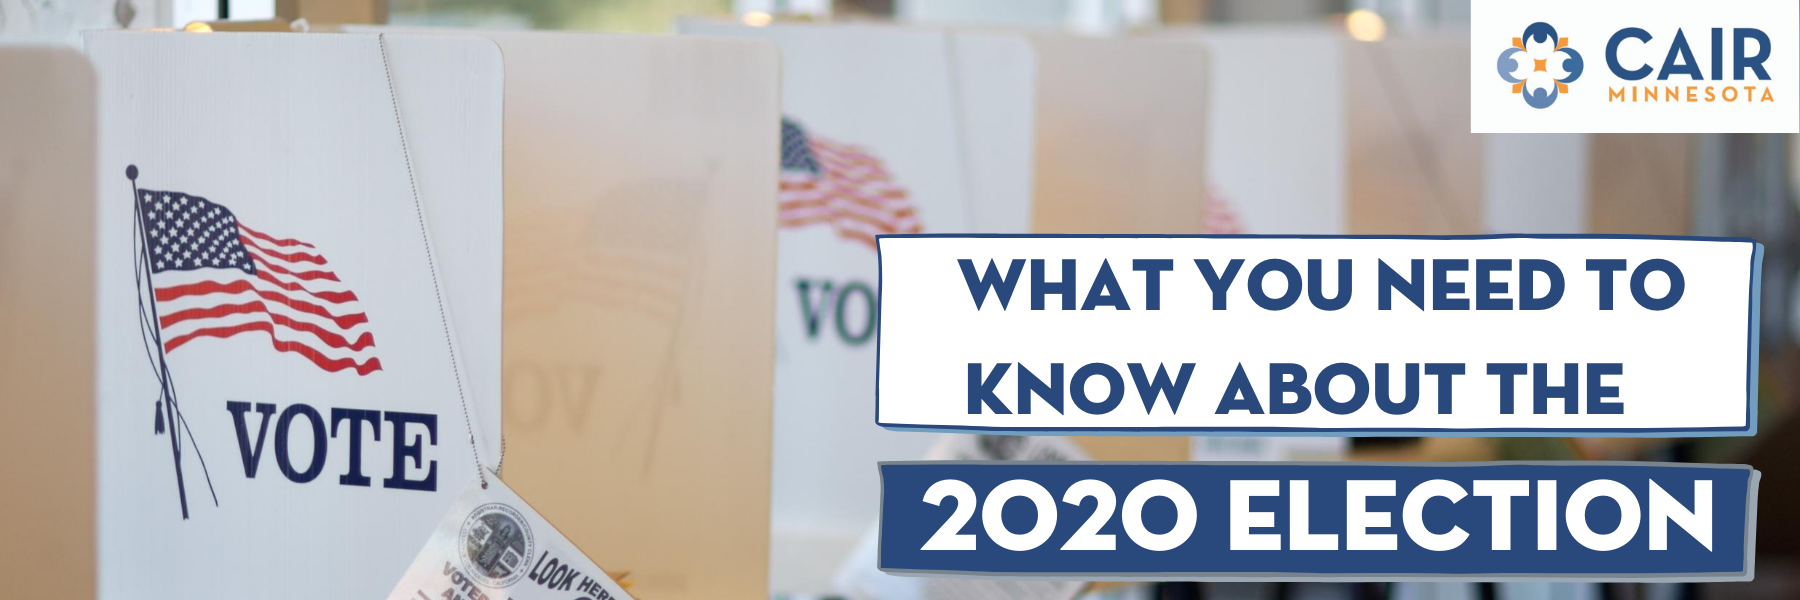 What you need to know about 2020 Election